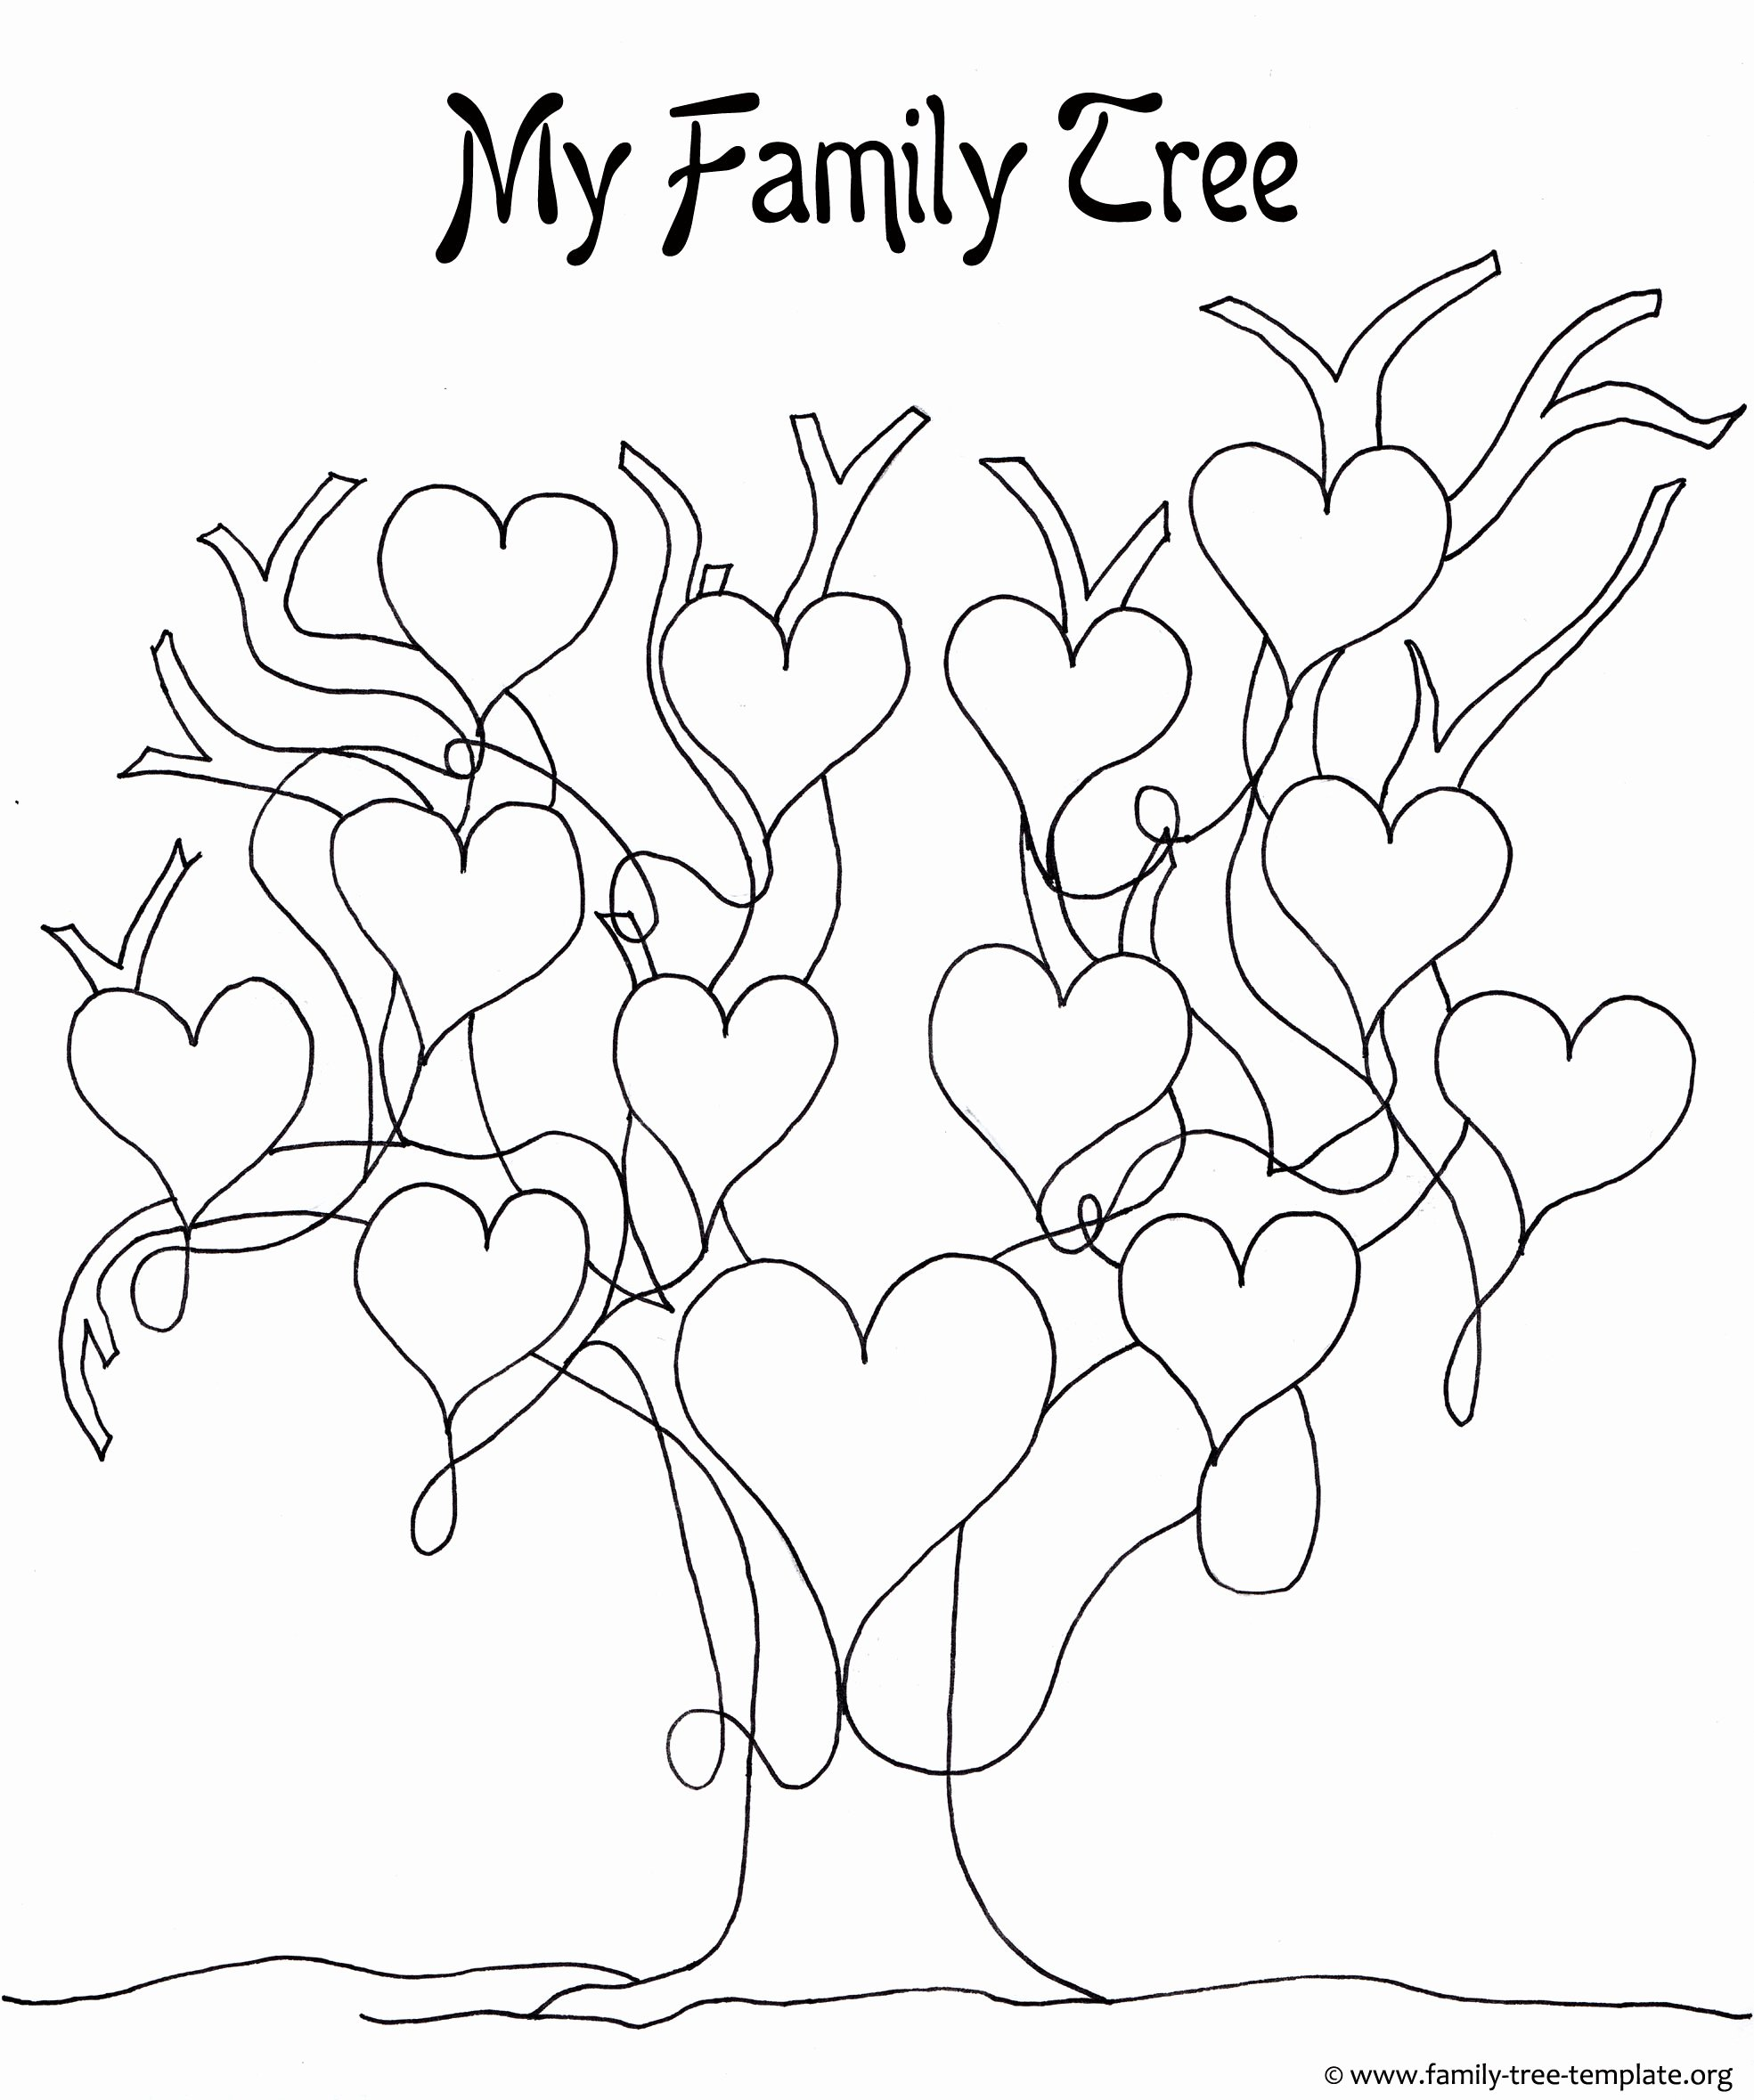 Blank Family Tree Poster New A Printable Blank Family Tree to Make Your Kids Genealogy